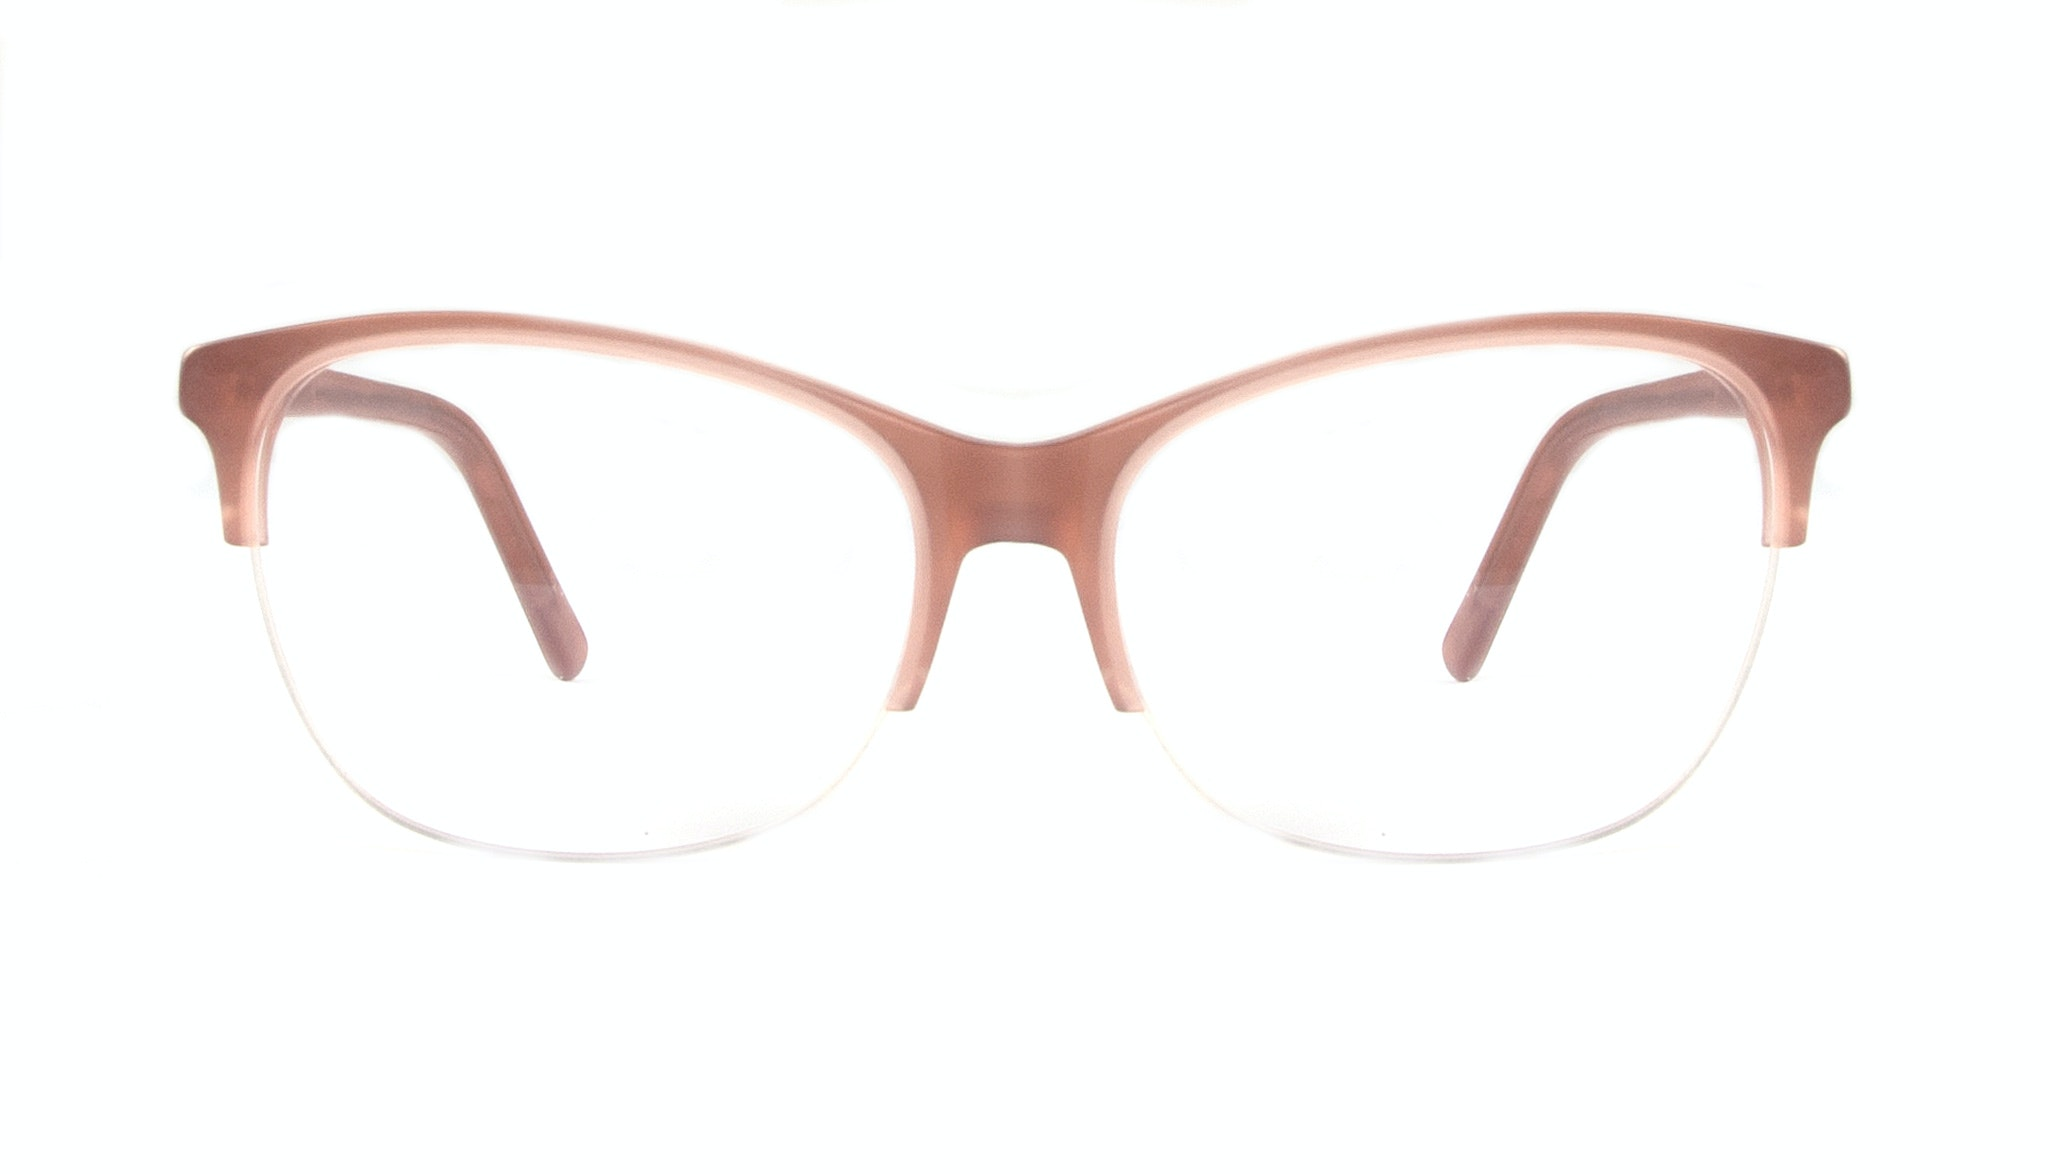 Affordable Fashion Glasses Cat Eye Rectangle Semi-Rimless Eyeglasses Women Flair Light Old Rose